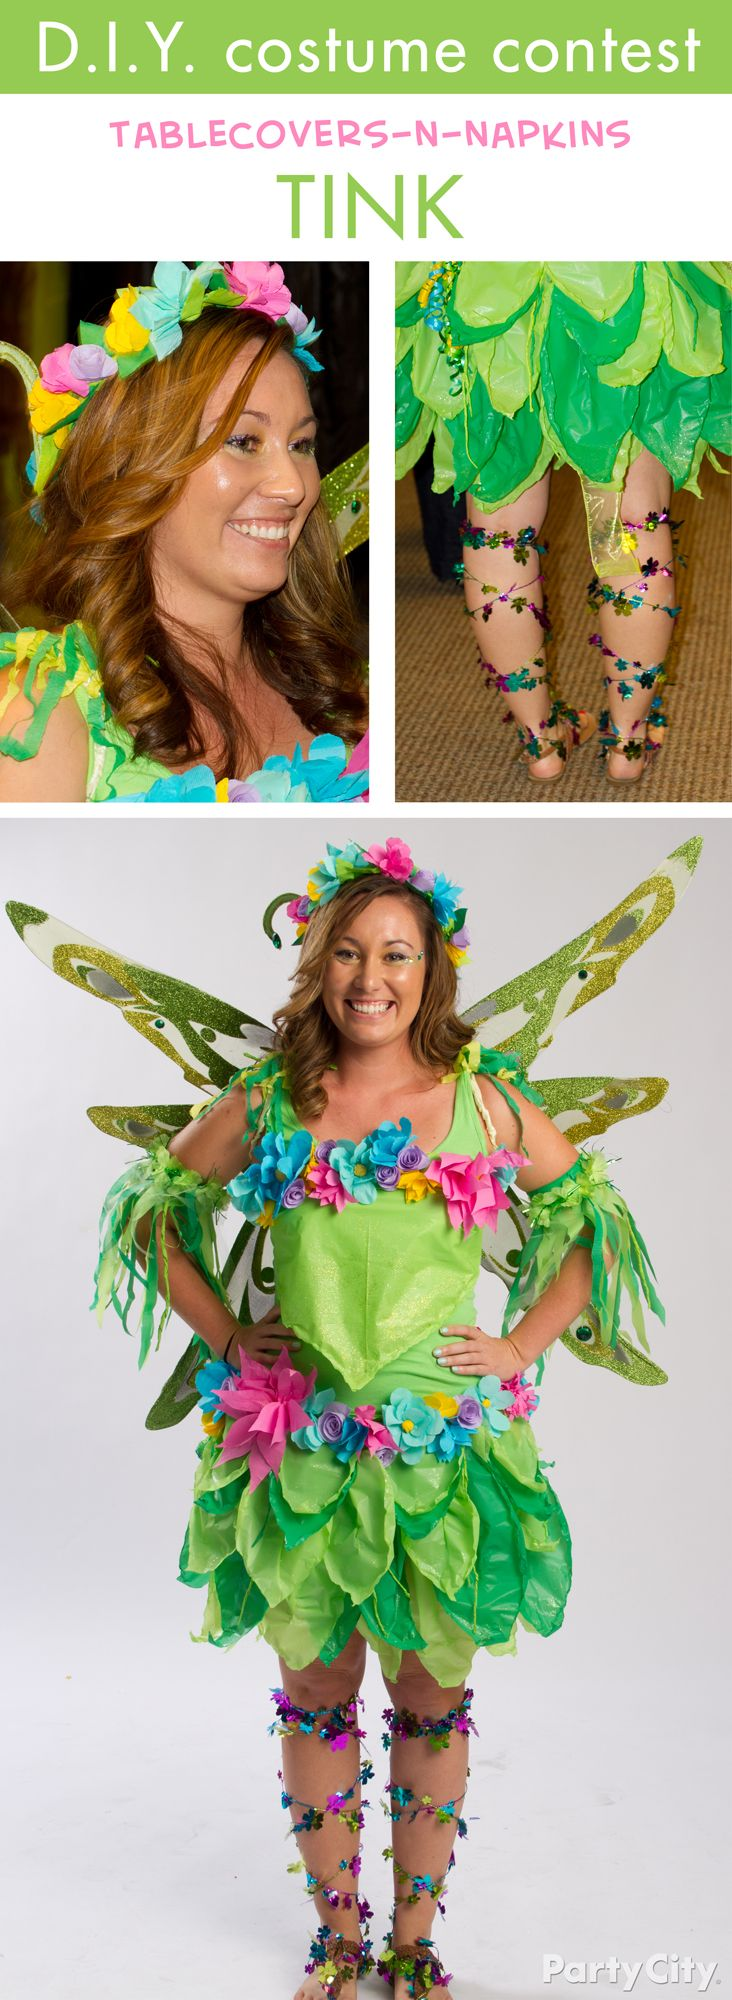 72 best Behind the Scenes @PartyCity! images on Pinterest ...